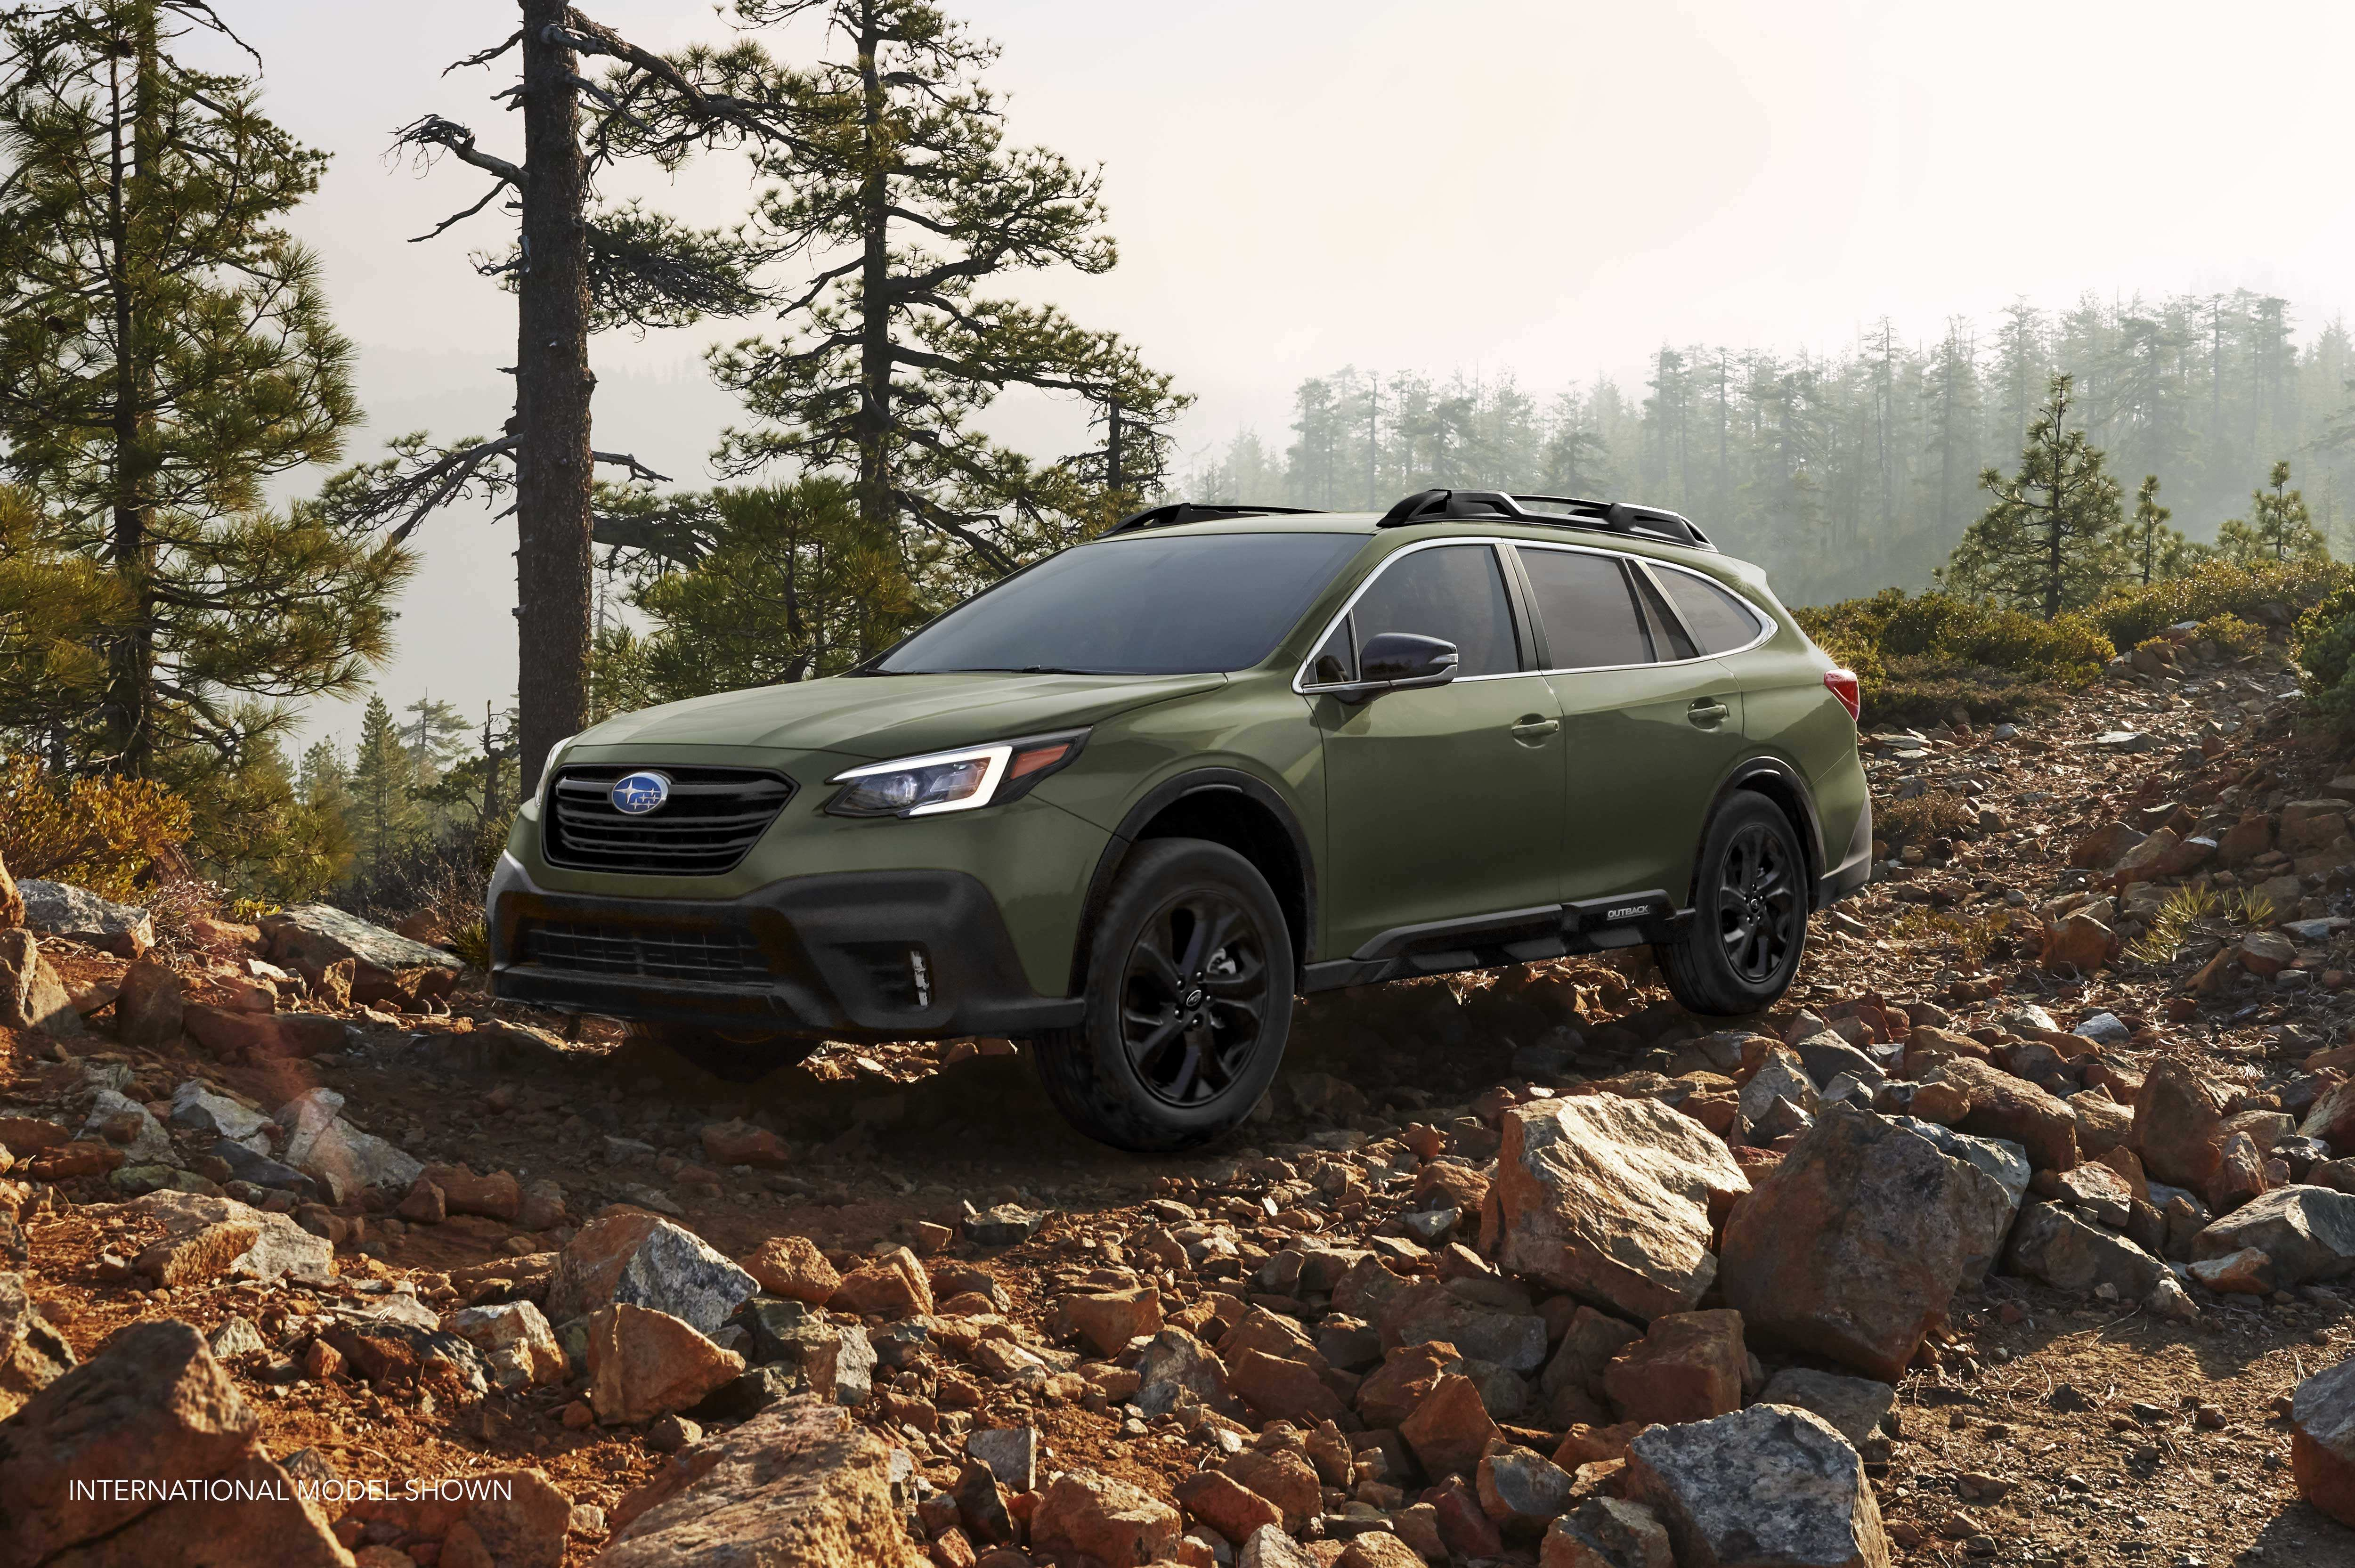 16 All New Subaru Hybrid Outback 2020 Pictures